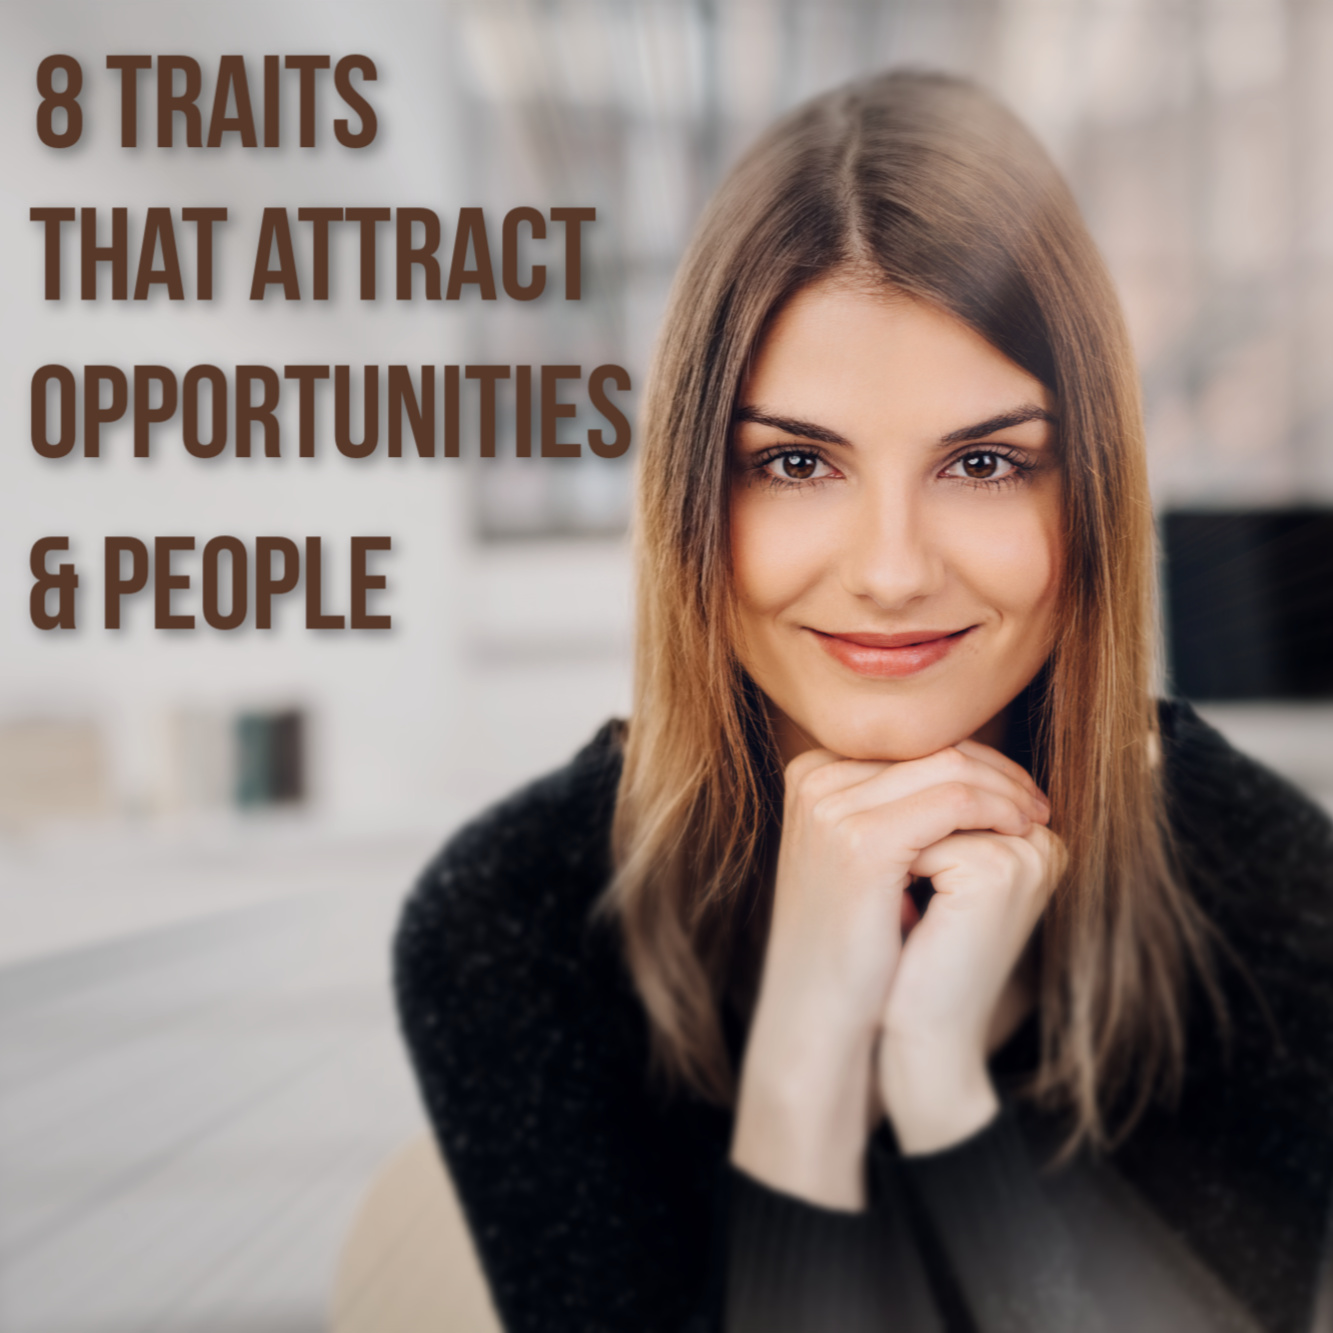 10 TRAITS THAT ATTRACT OPPORTUNITIES & PEOPLE, Style Clinic, Ann Reinten, Image Innovators, Image Consultant Training, Image Consultant tools and resources.